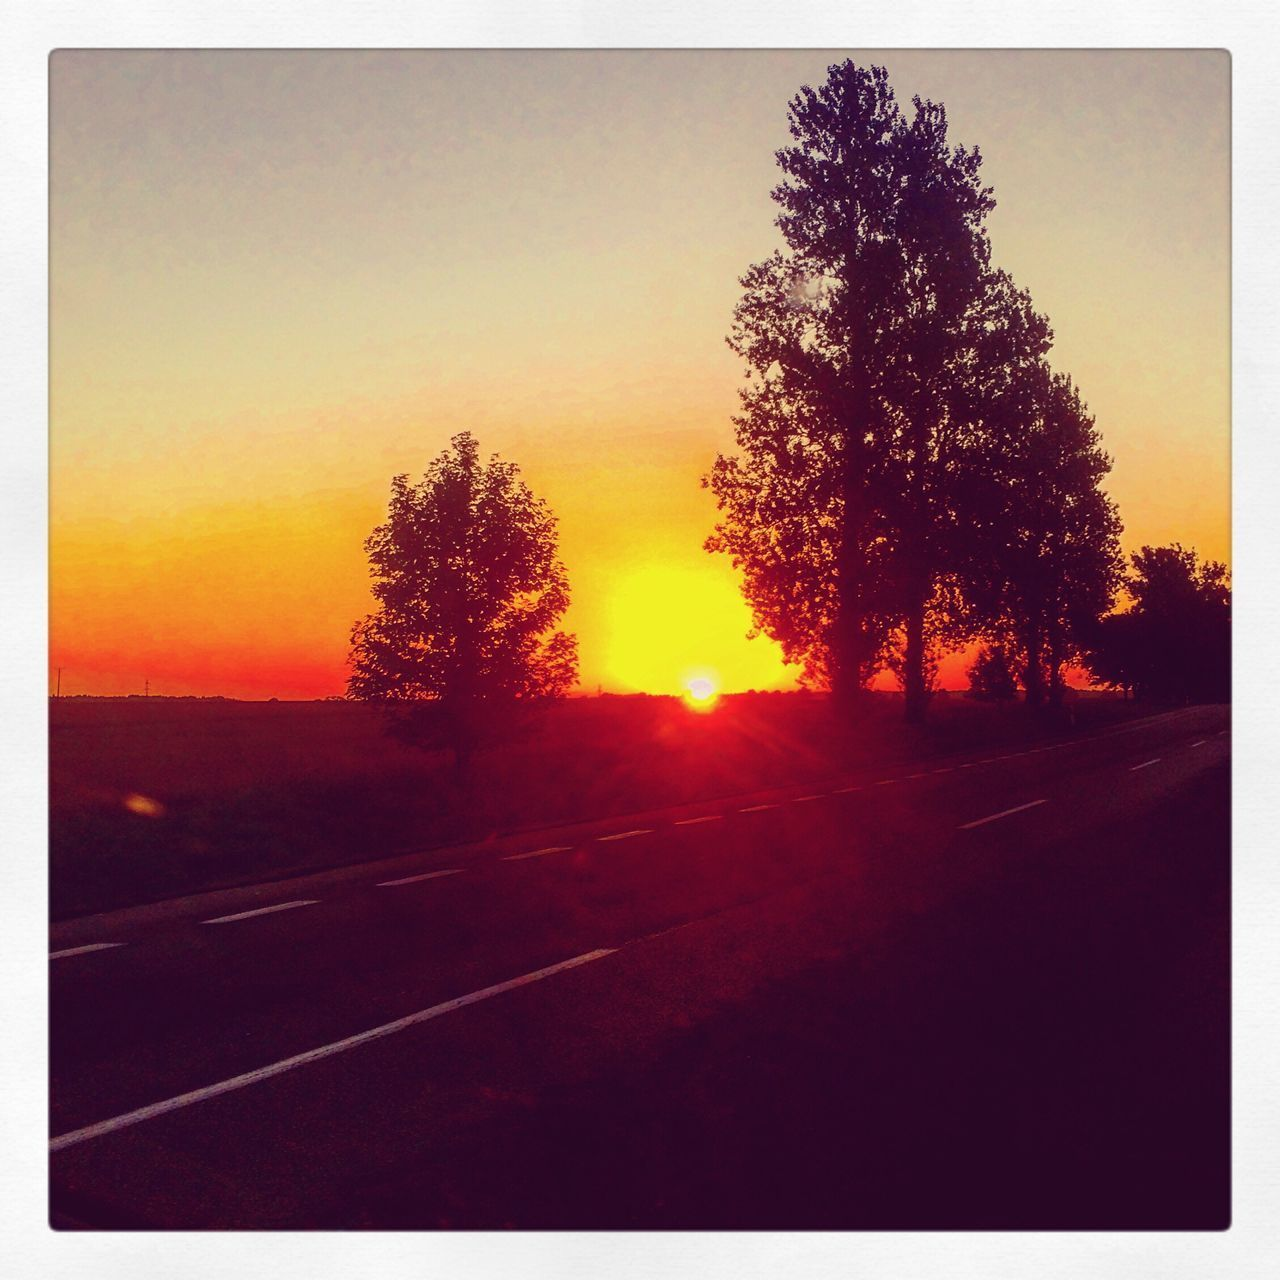 tree, sunset, road, silhouette, sun, nature, no people, tranquil scene, transportation, scenics, beauty in nature, outdoors, sky, tranquility, sunlight, the way forward, landscape, clear sky, day